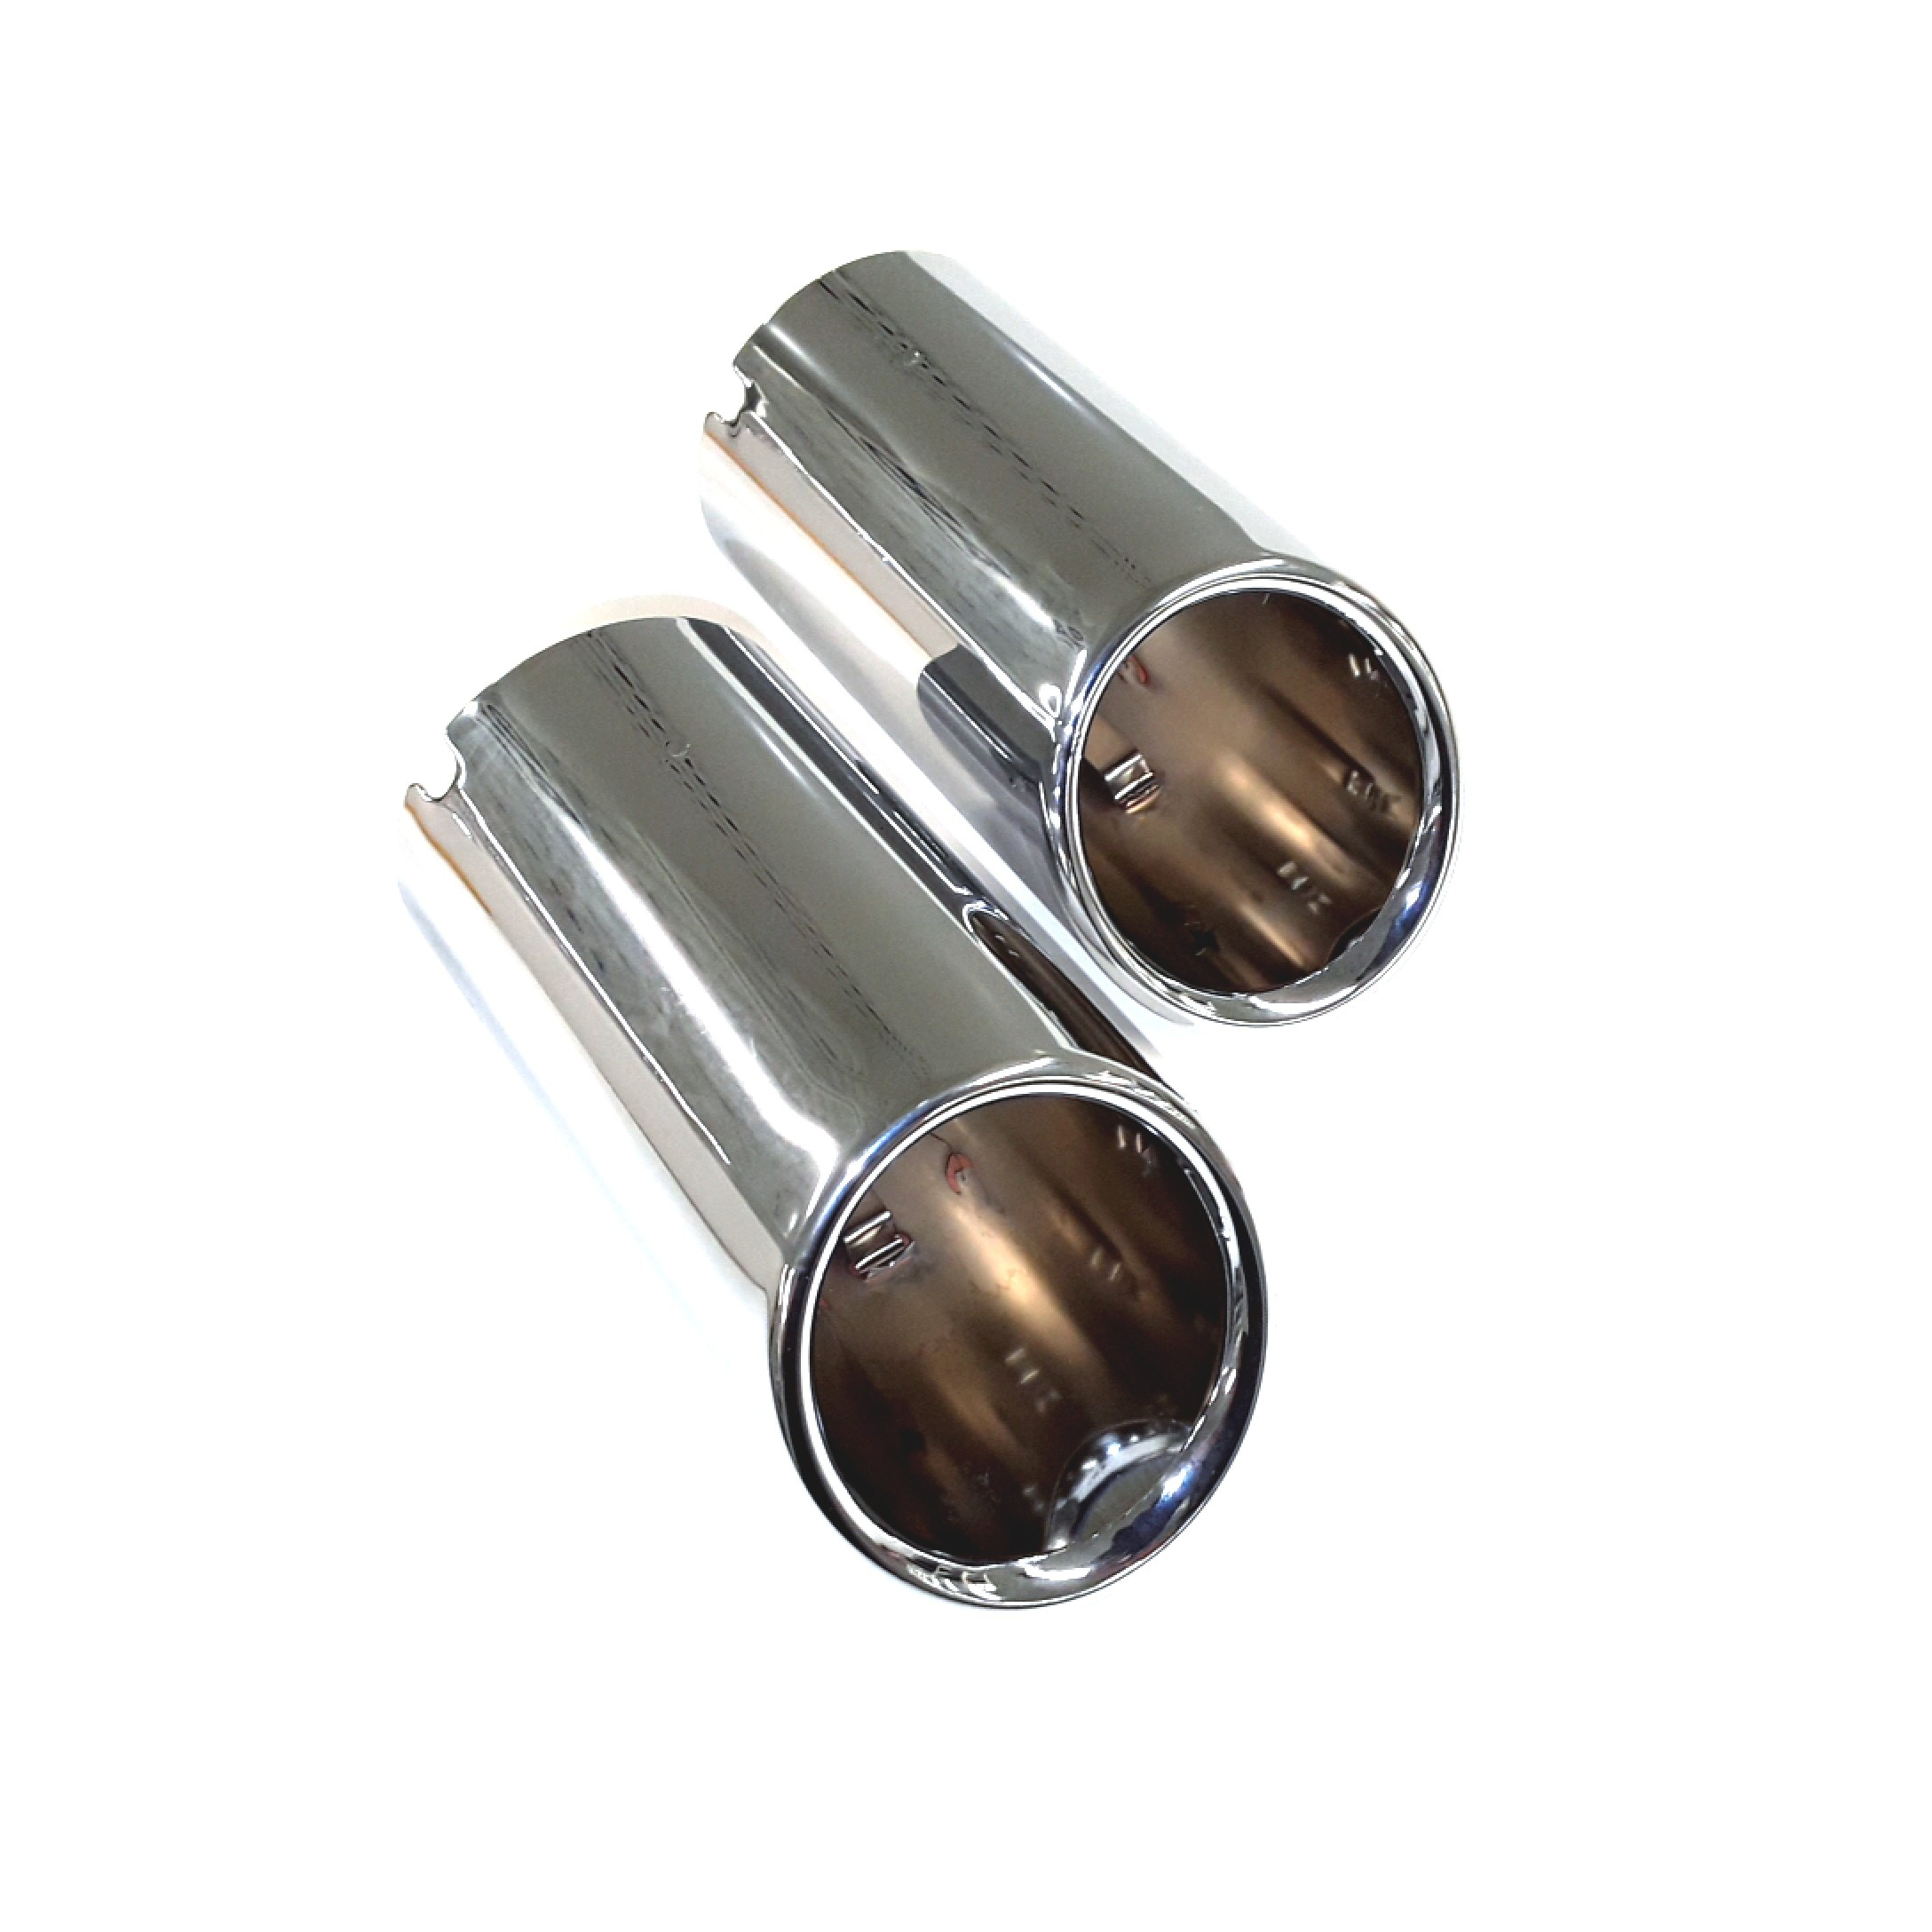 8k0071761 Audi Exhaust Tips Chrome Diesel